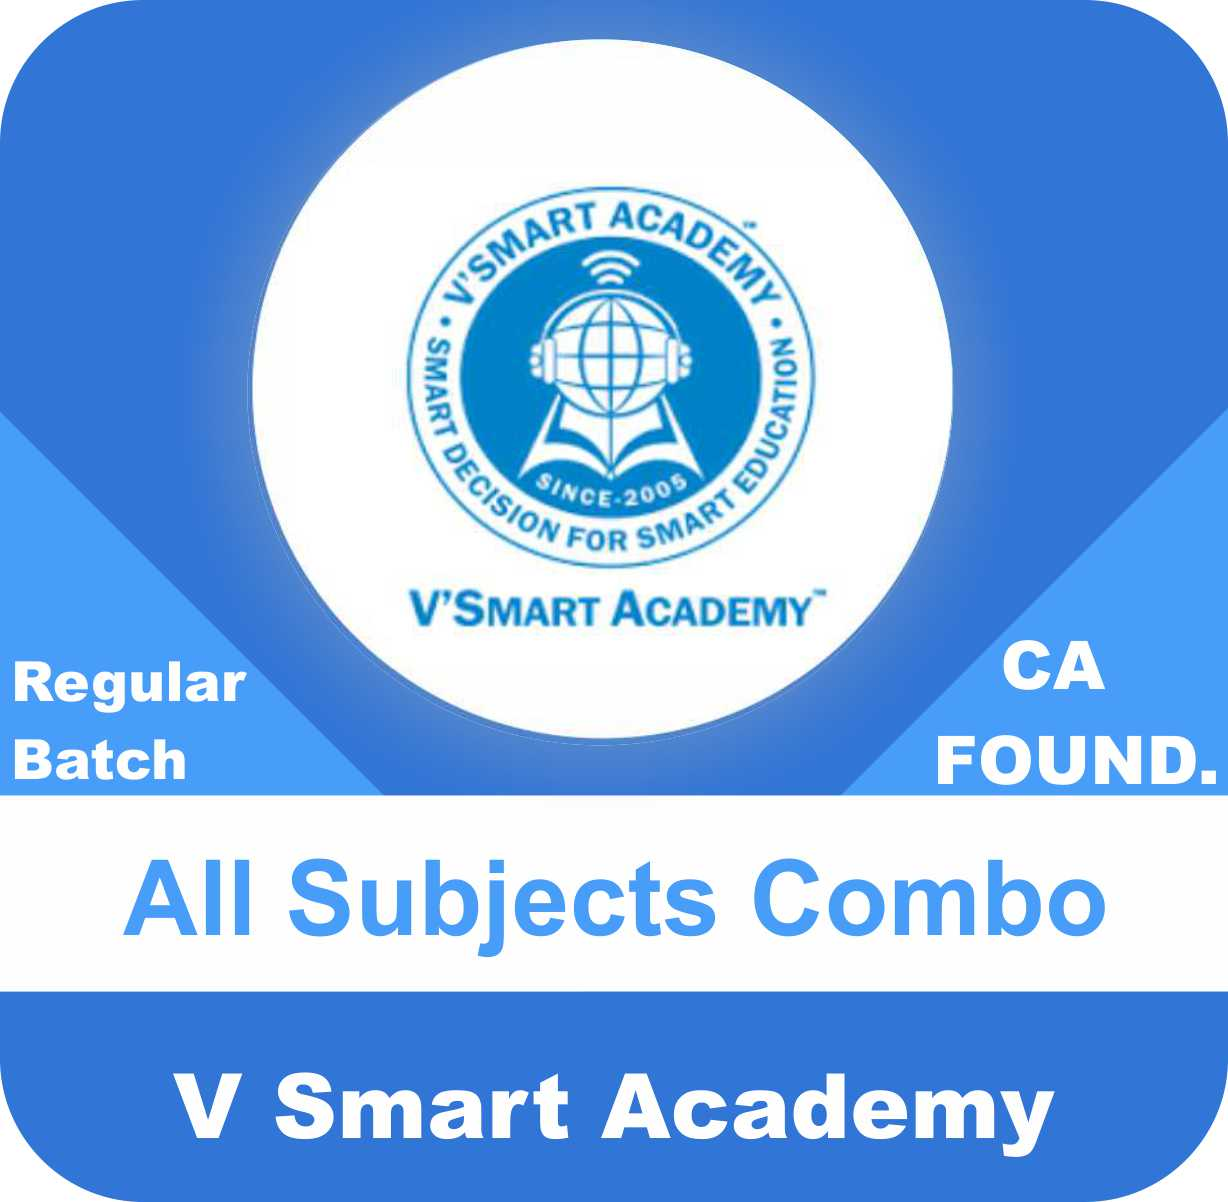 CA Foundation All Subjects Combo (Acc,Law,Bcr,Bck,Maths,Eco)